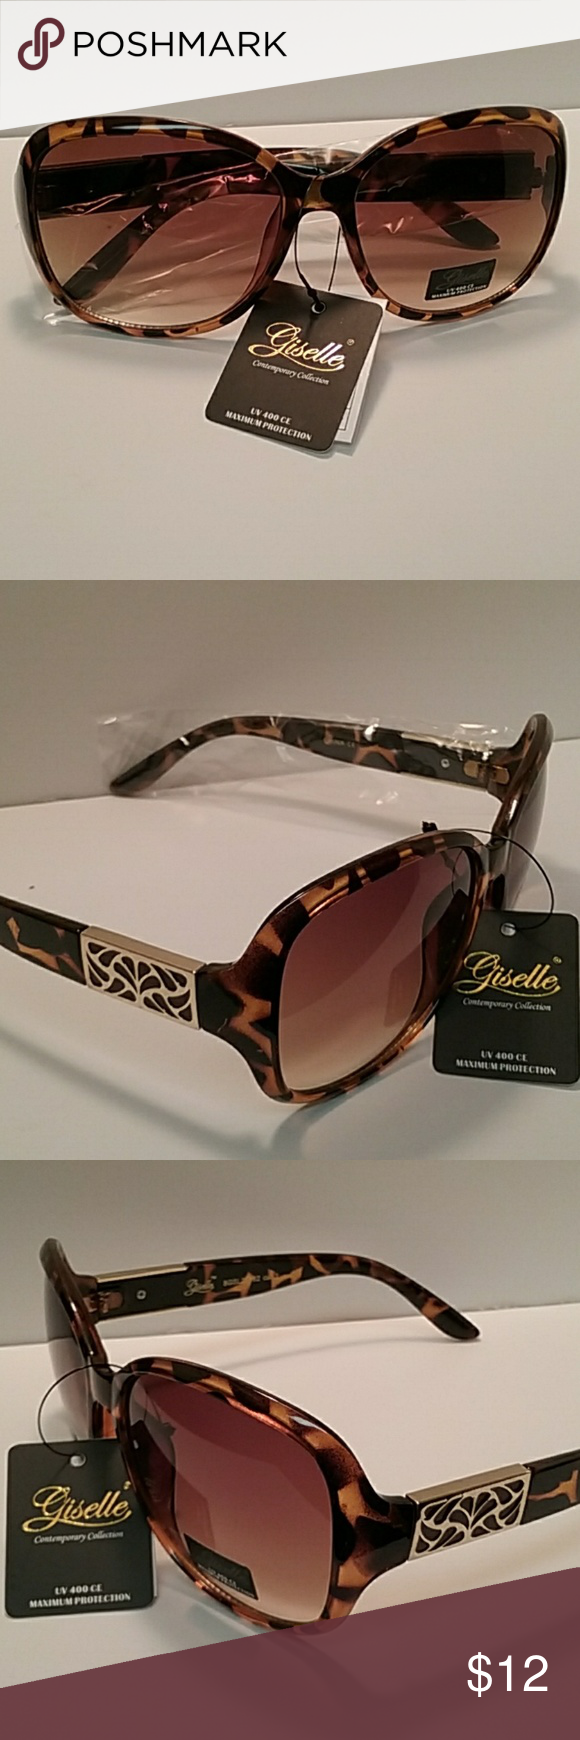 2f0bf044d9964 GISELLE CONTEMPORARY COLLECTION SUNGLASSES GISELLE CONTEMPORARY COLLECTION  SUNGLASSES NWT STYLISH MULTI COLOR PLASTIC FRAME TWO TONE